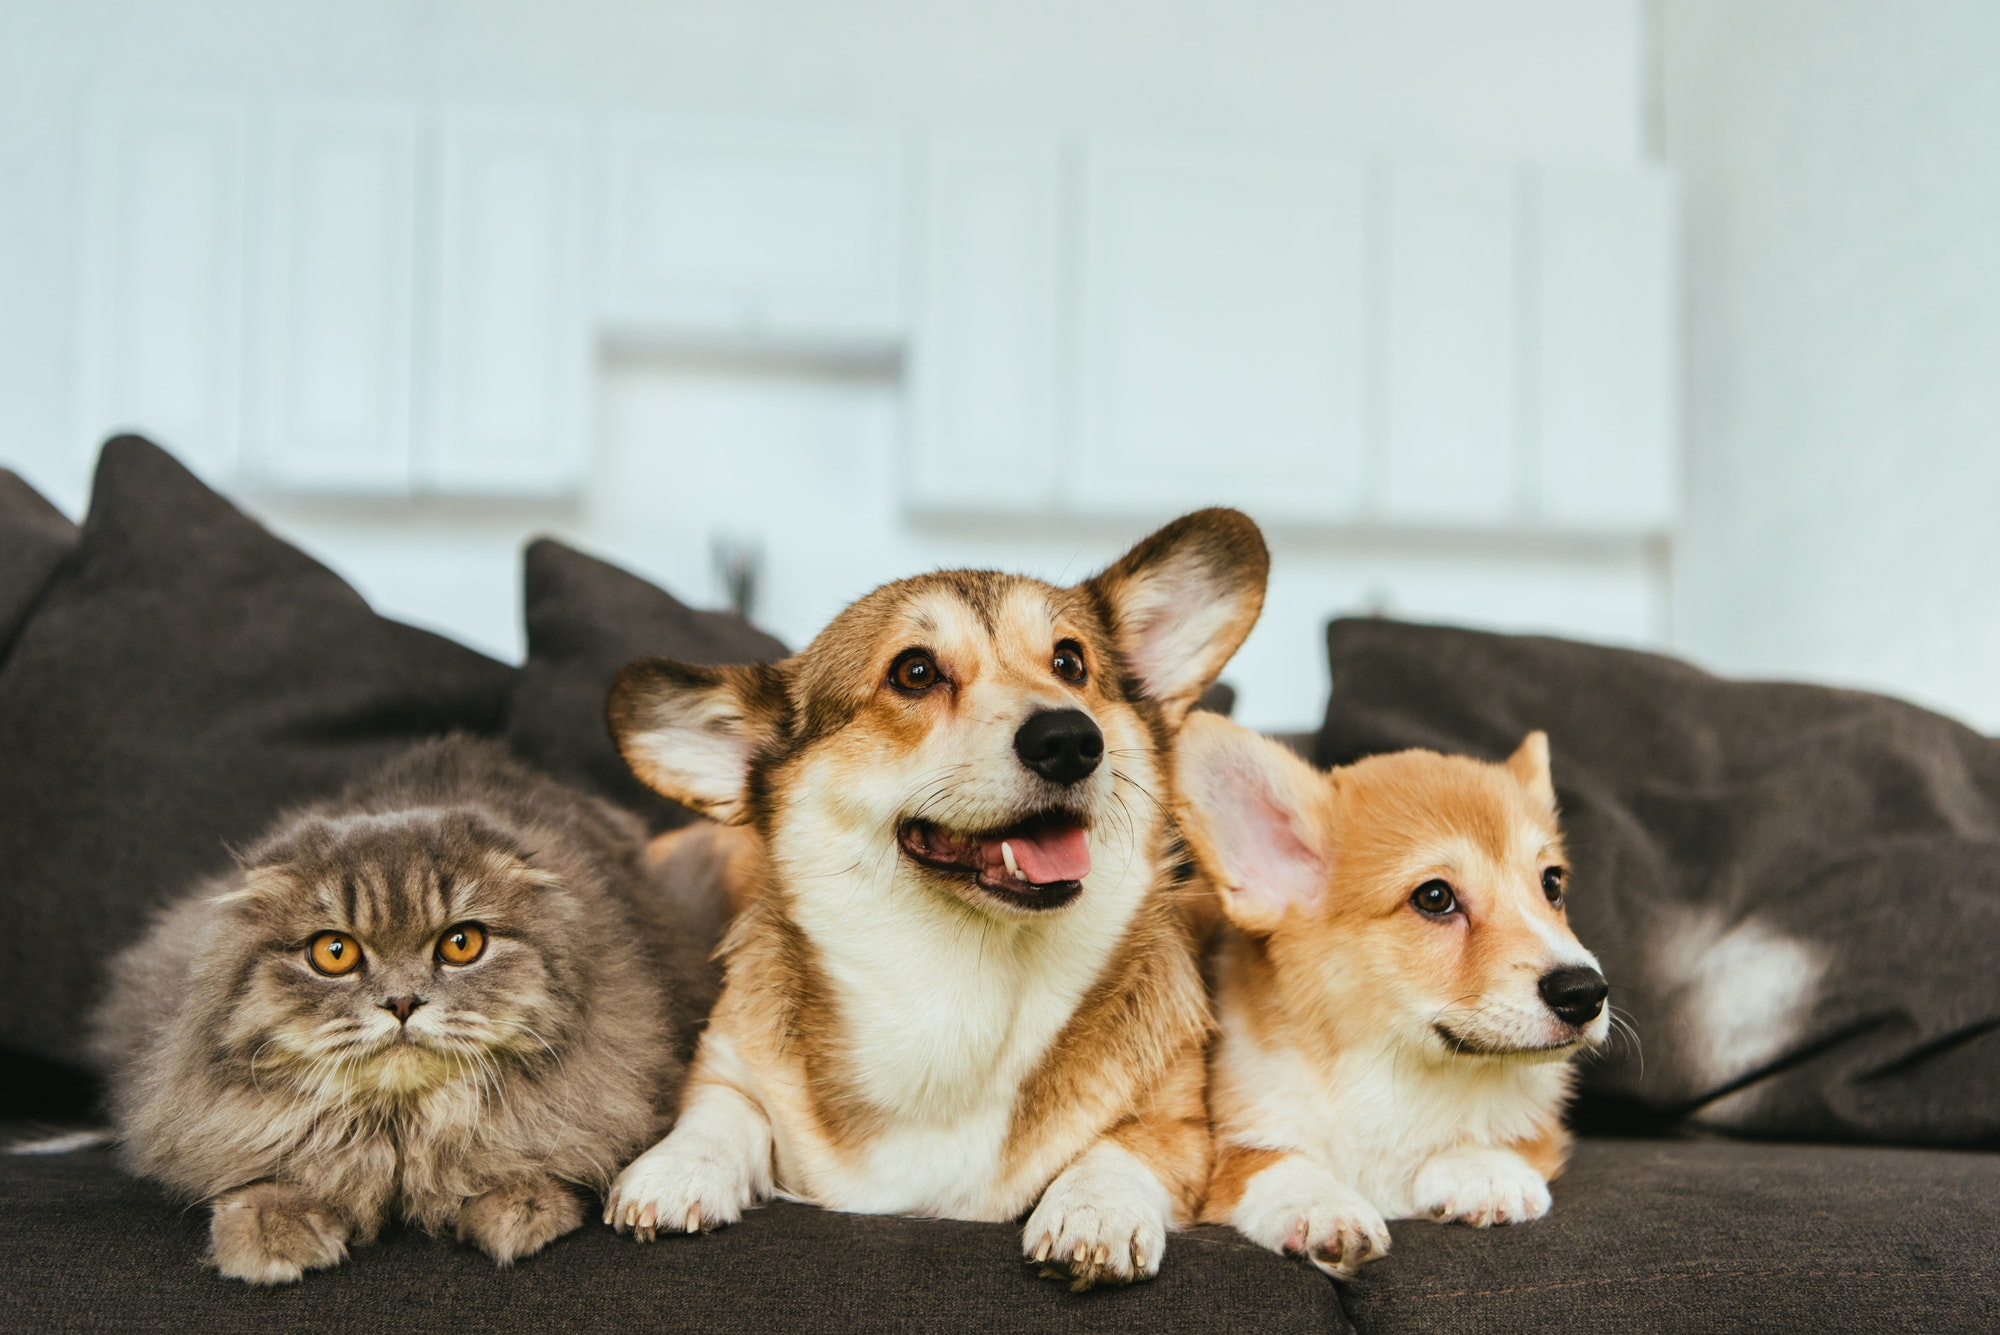 Two dogs and a cat on a sofa